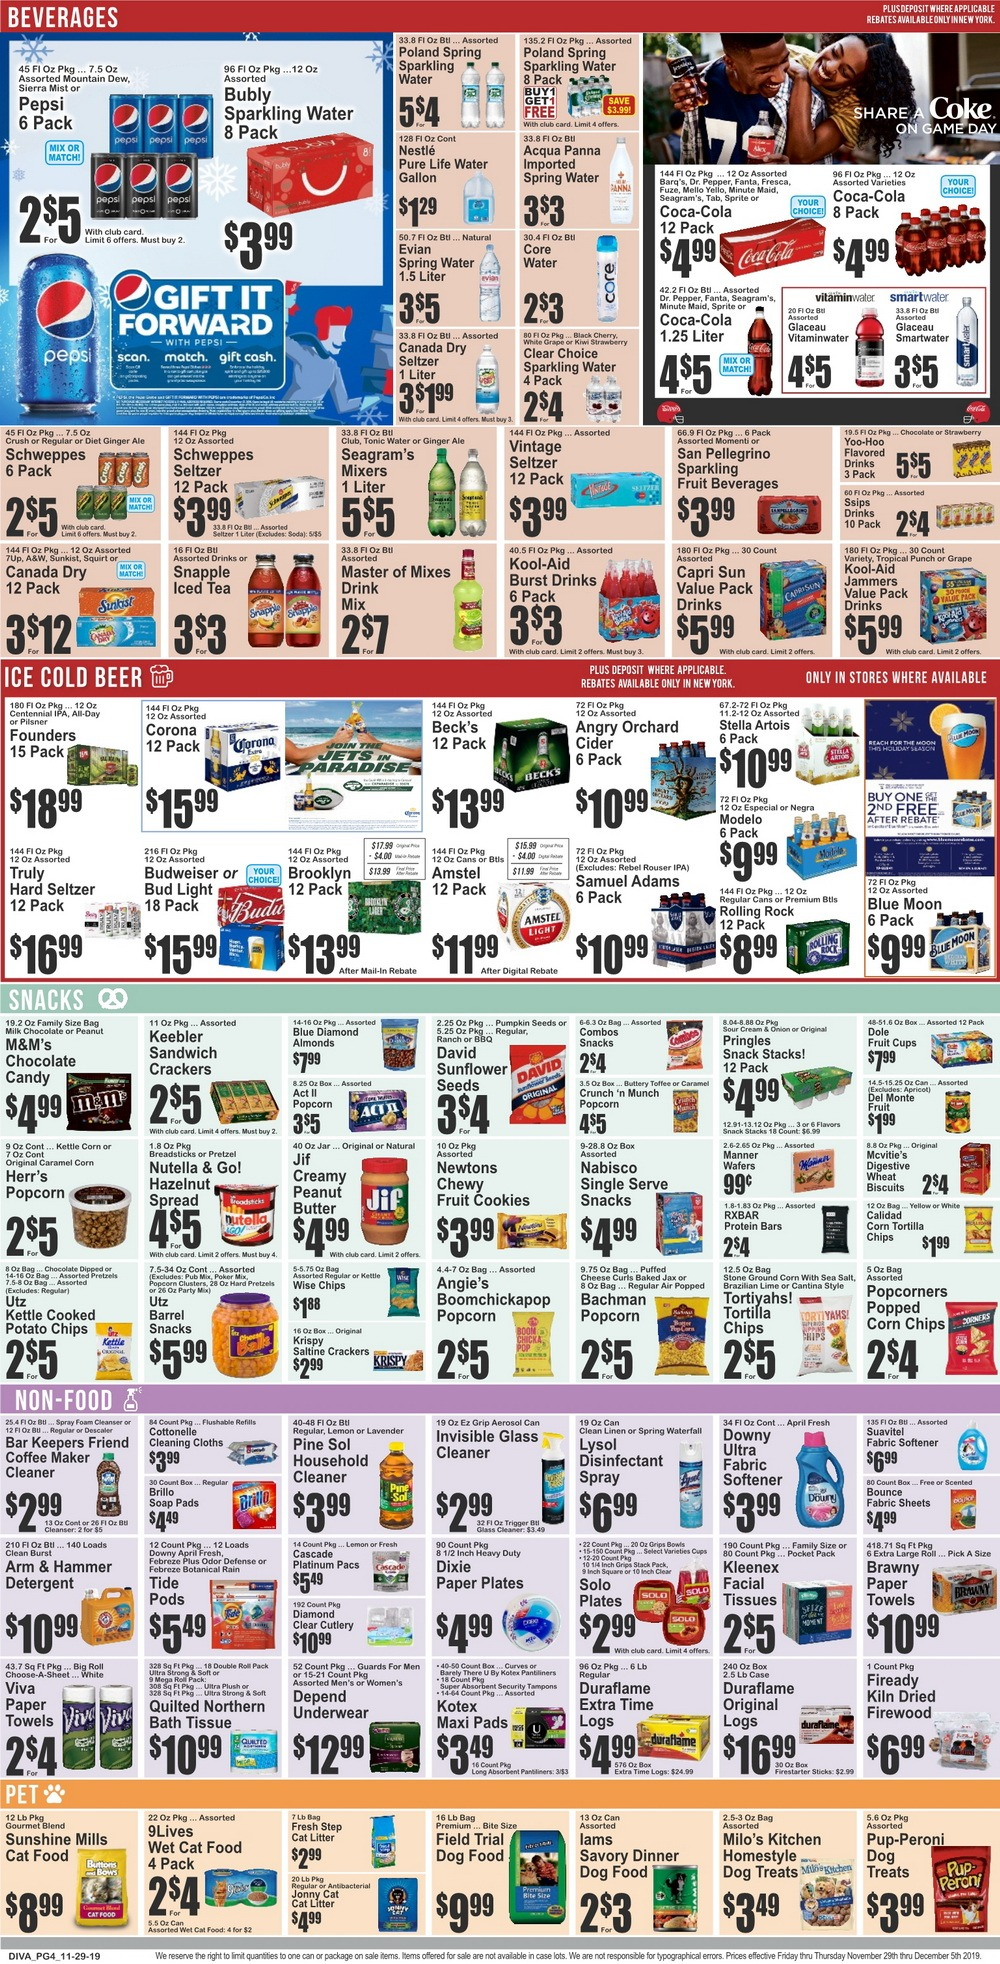 Tapatio Market Weekly Ad